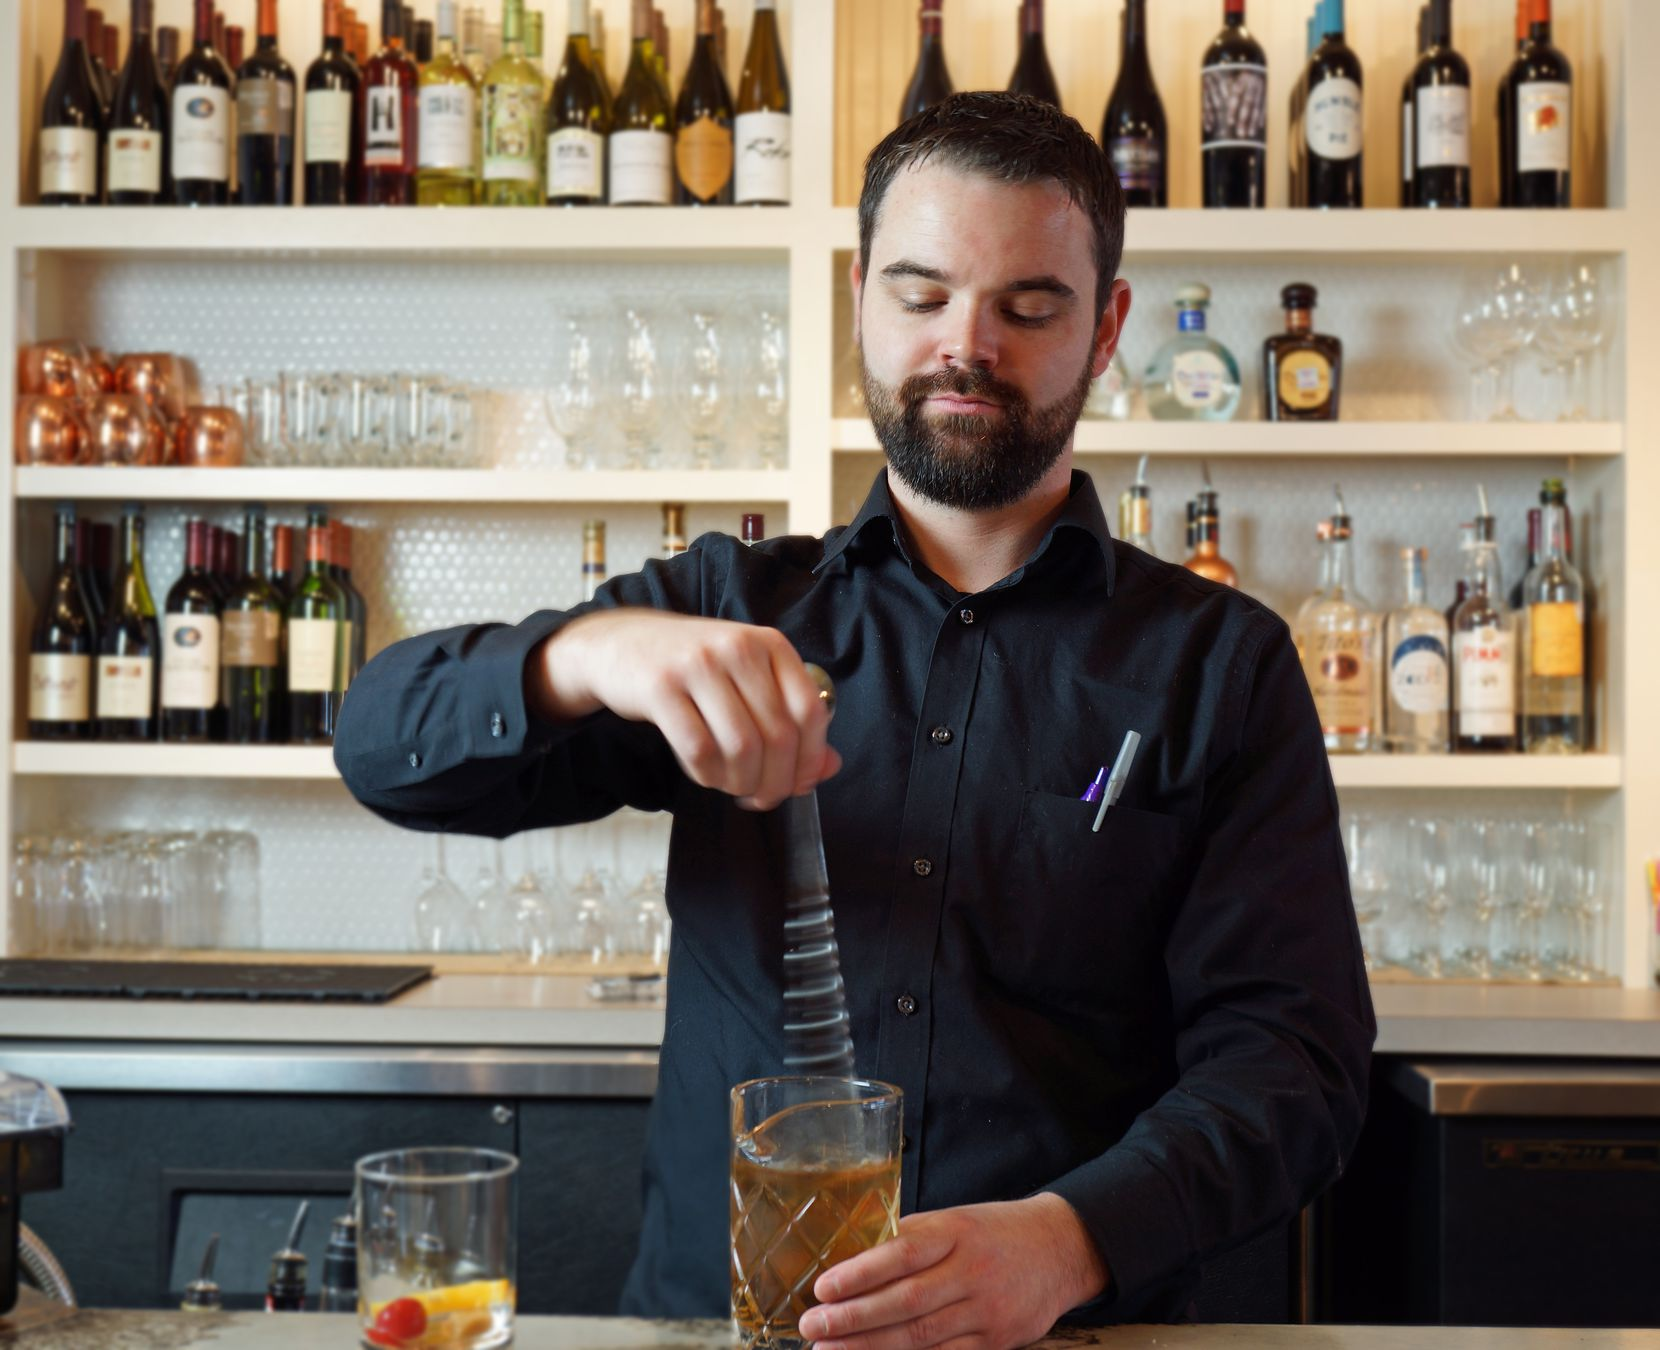 TJ's Seafood Market serves $5 Old Fashioneds all day for Father's Day.